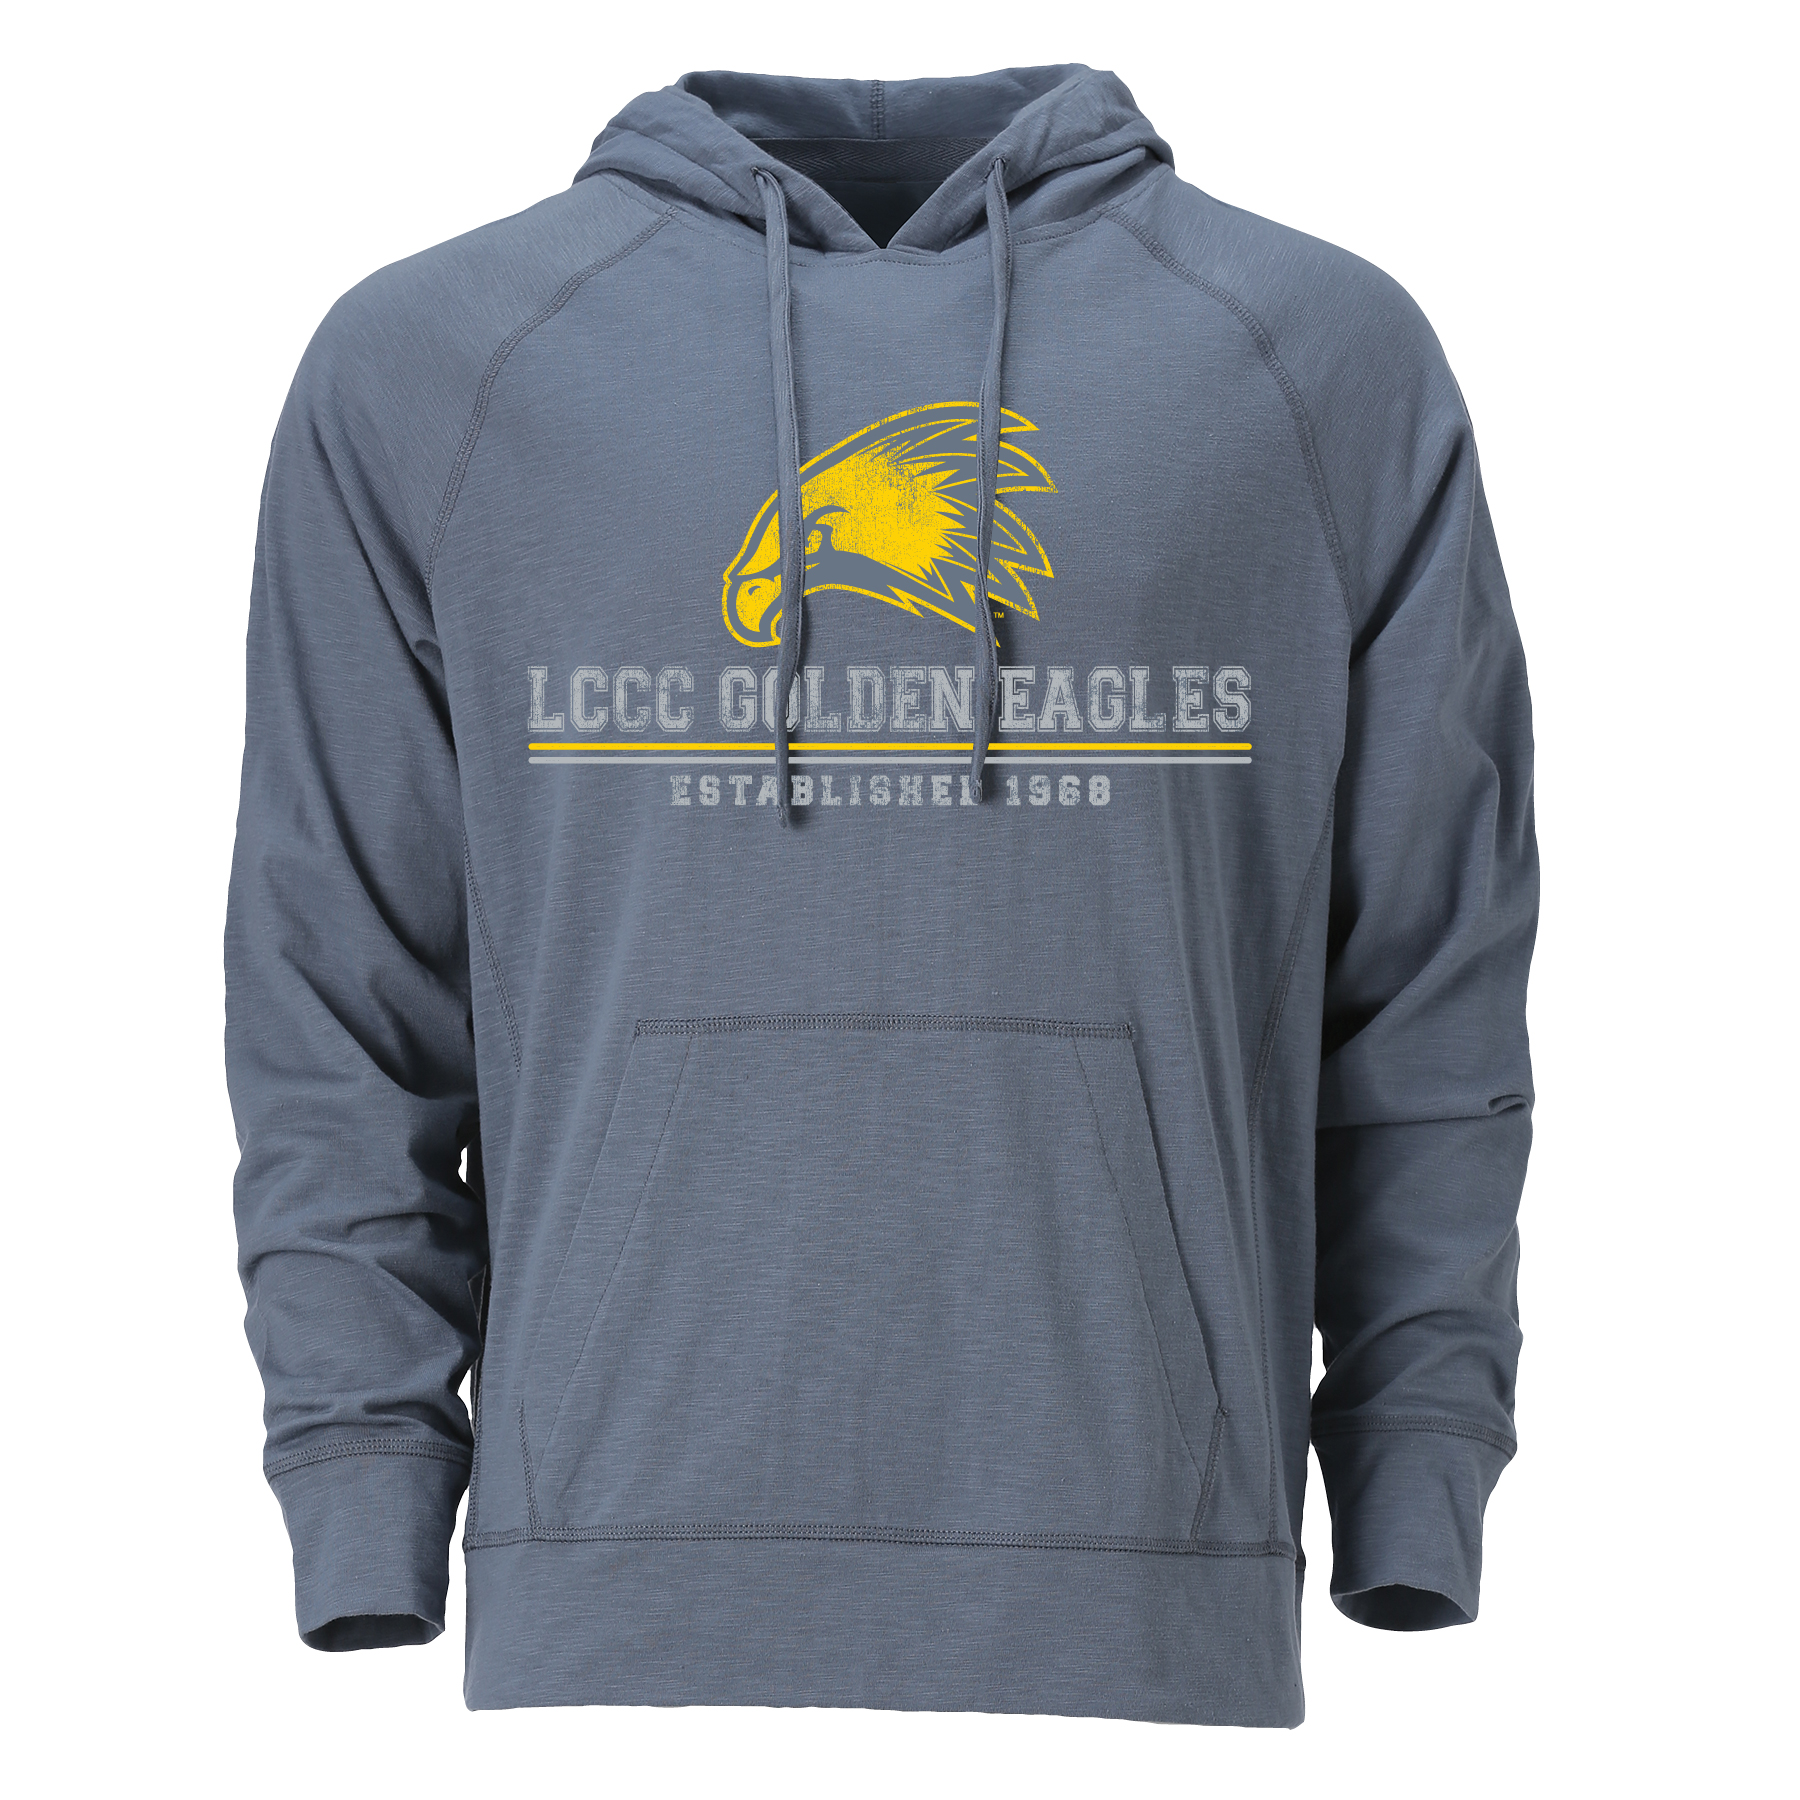 LCCC Golden Eagles T-Shirt Hoodie